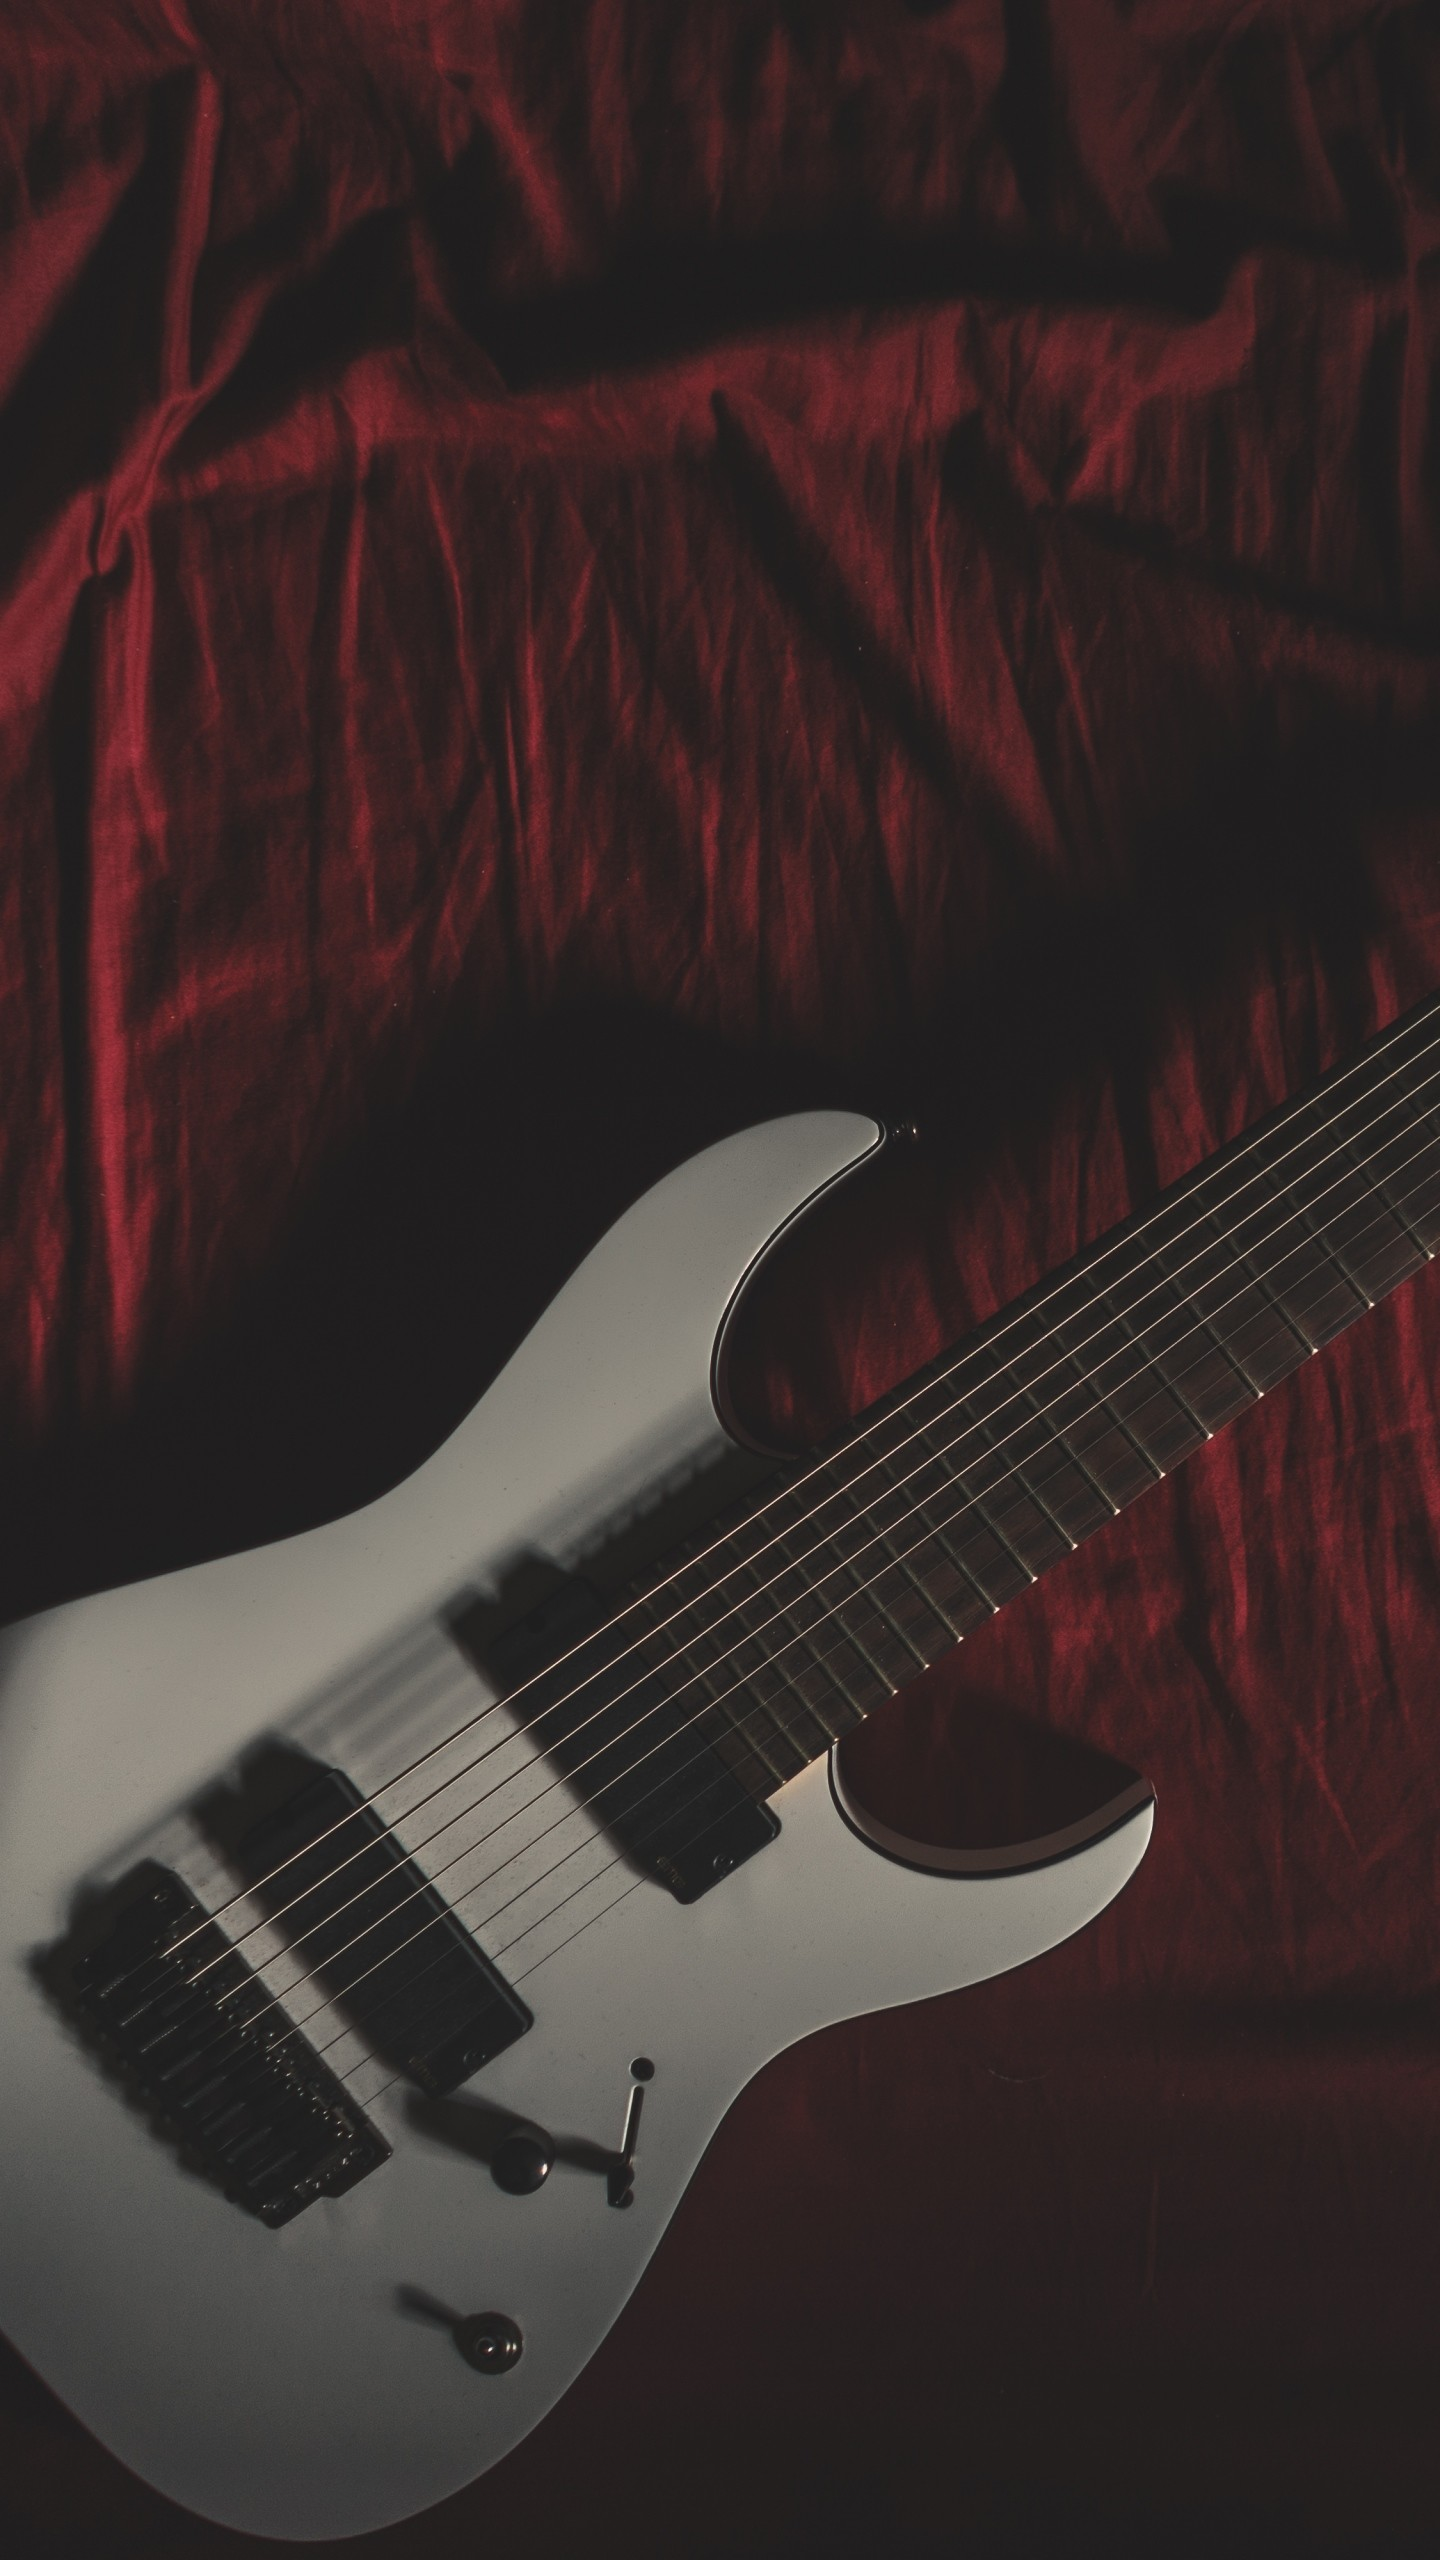 1440x2560 Preview wallpaper guitar, musical instrument, cloth